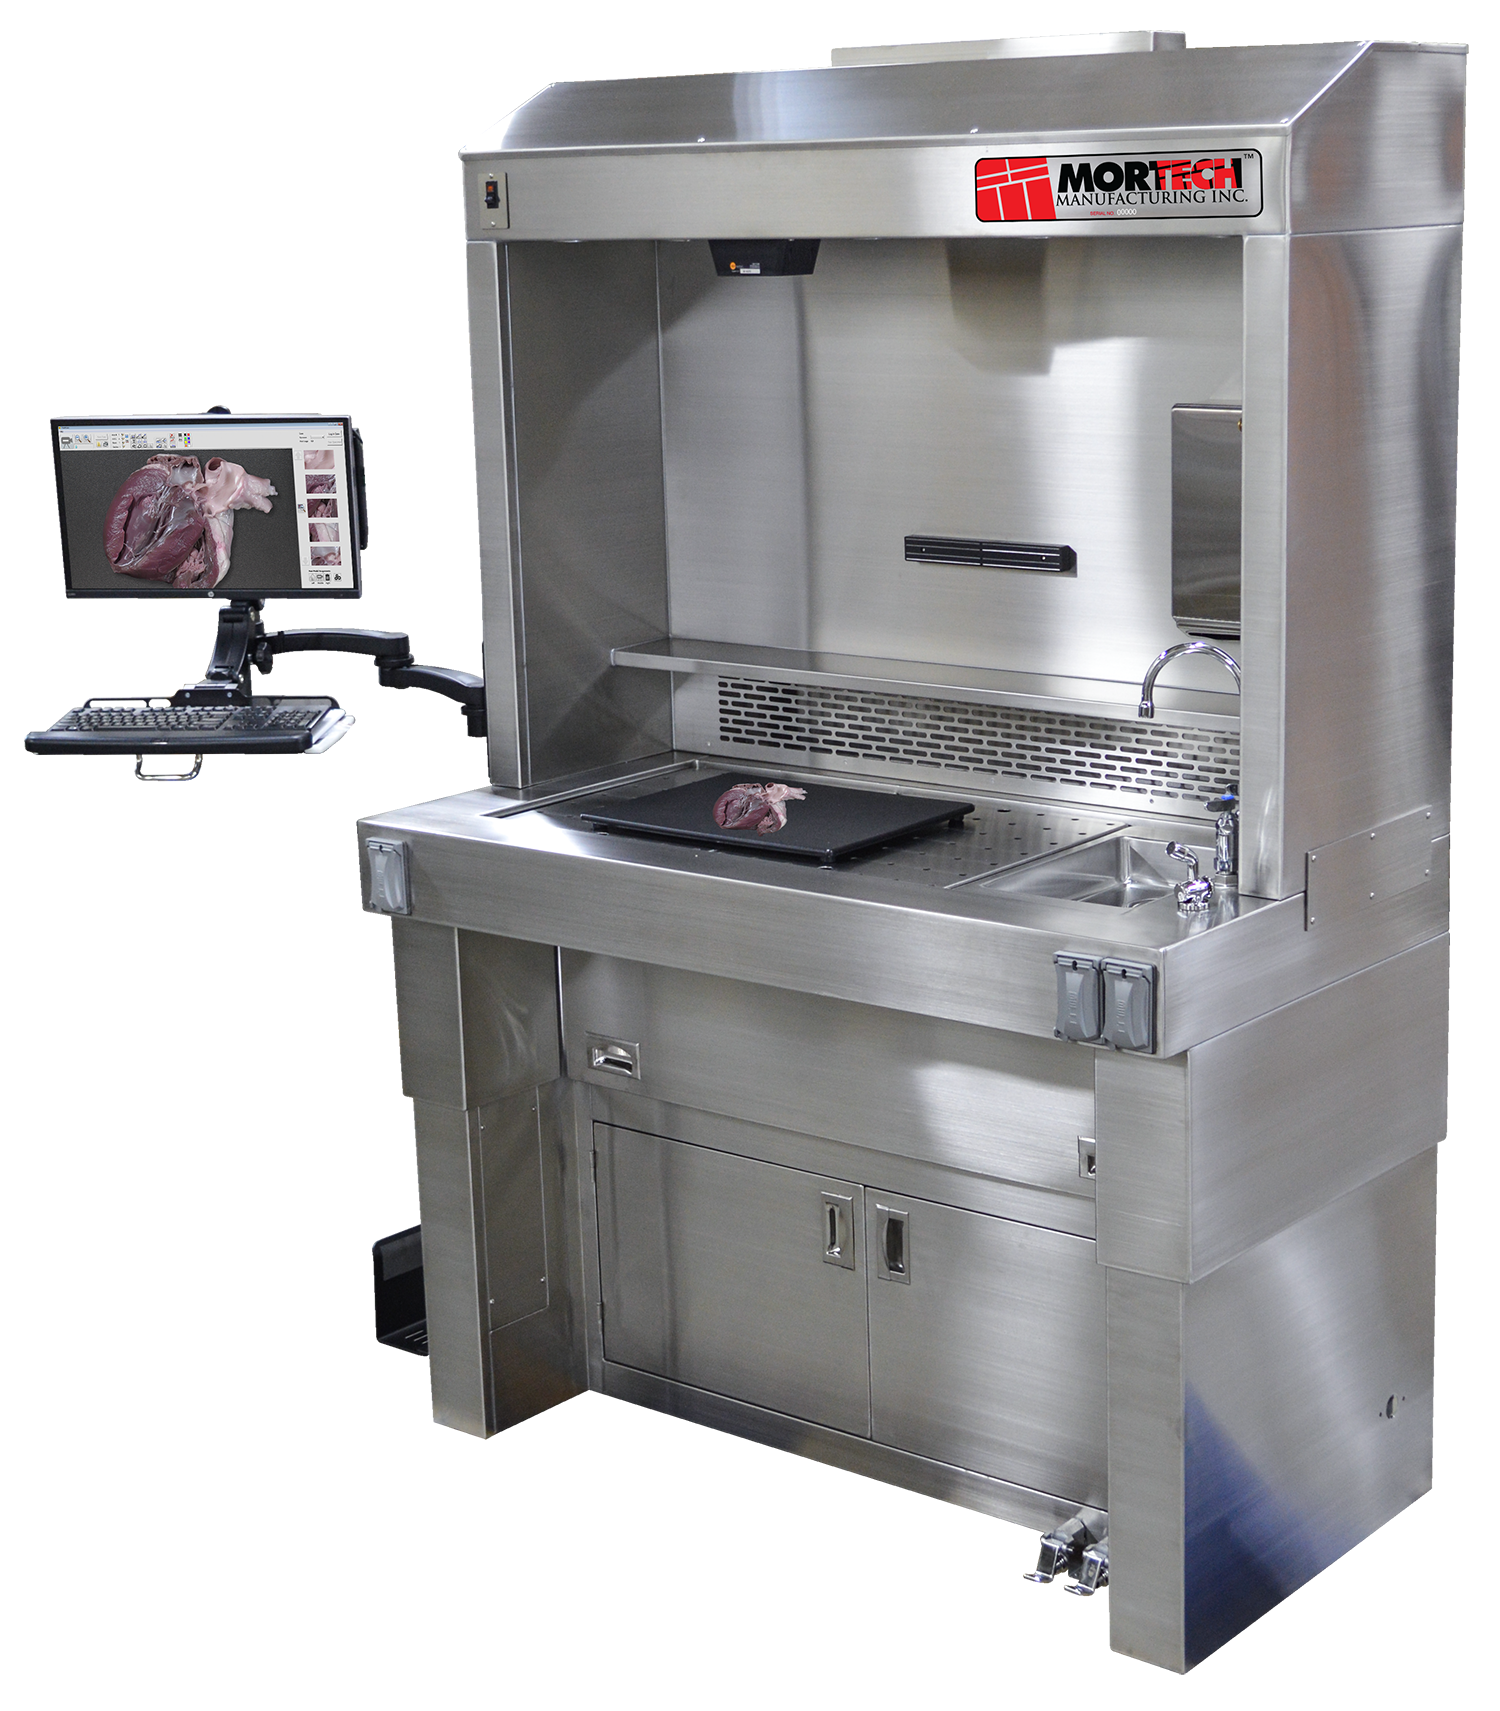 PathStation™: In-Hood Telepathology Imaging System for Grossing-Laboratory Accessory-Mortech Manufacturing Company Inc. Quality Stainless Steel Autopsy, Morgue, Funeral Home, Necropsy, Veterinary / Anatomy, Dissection Equipment and Accessories